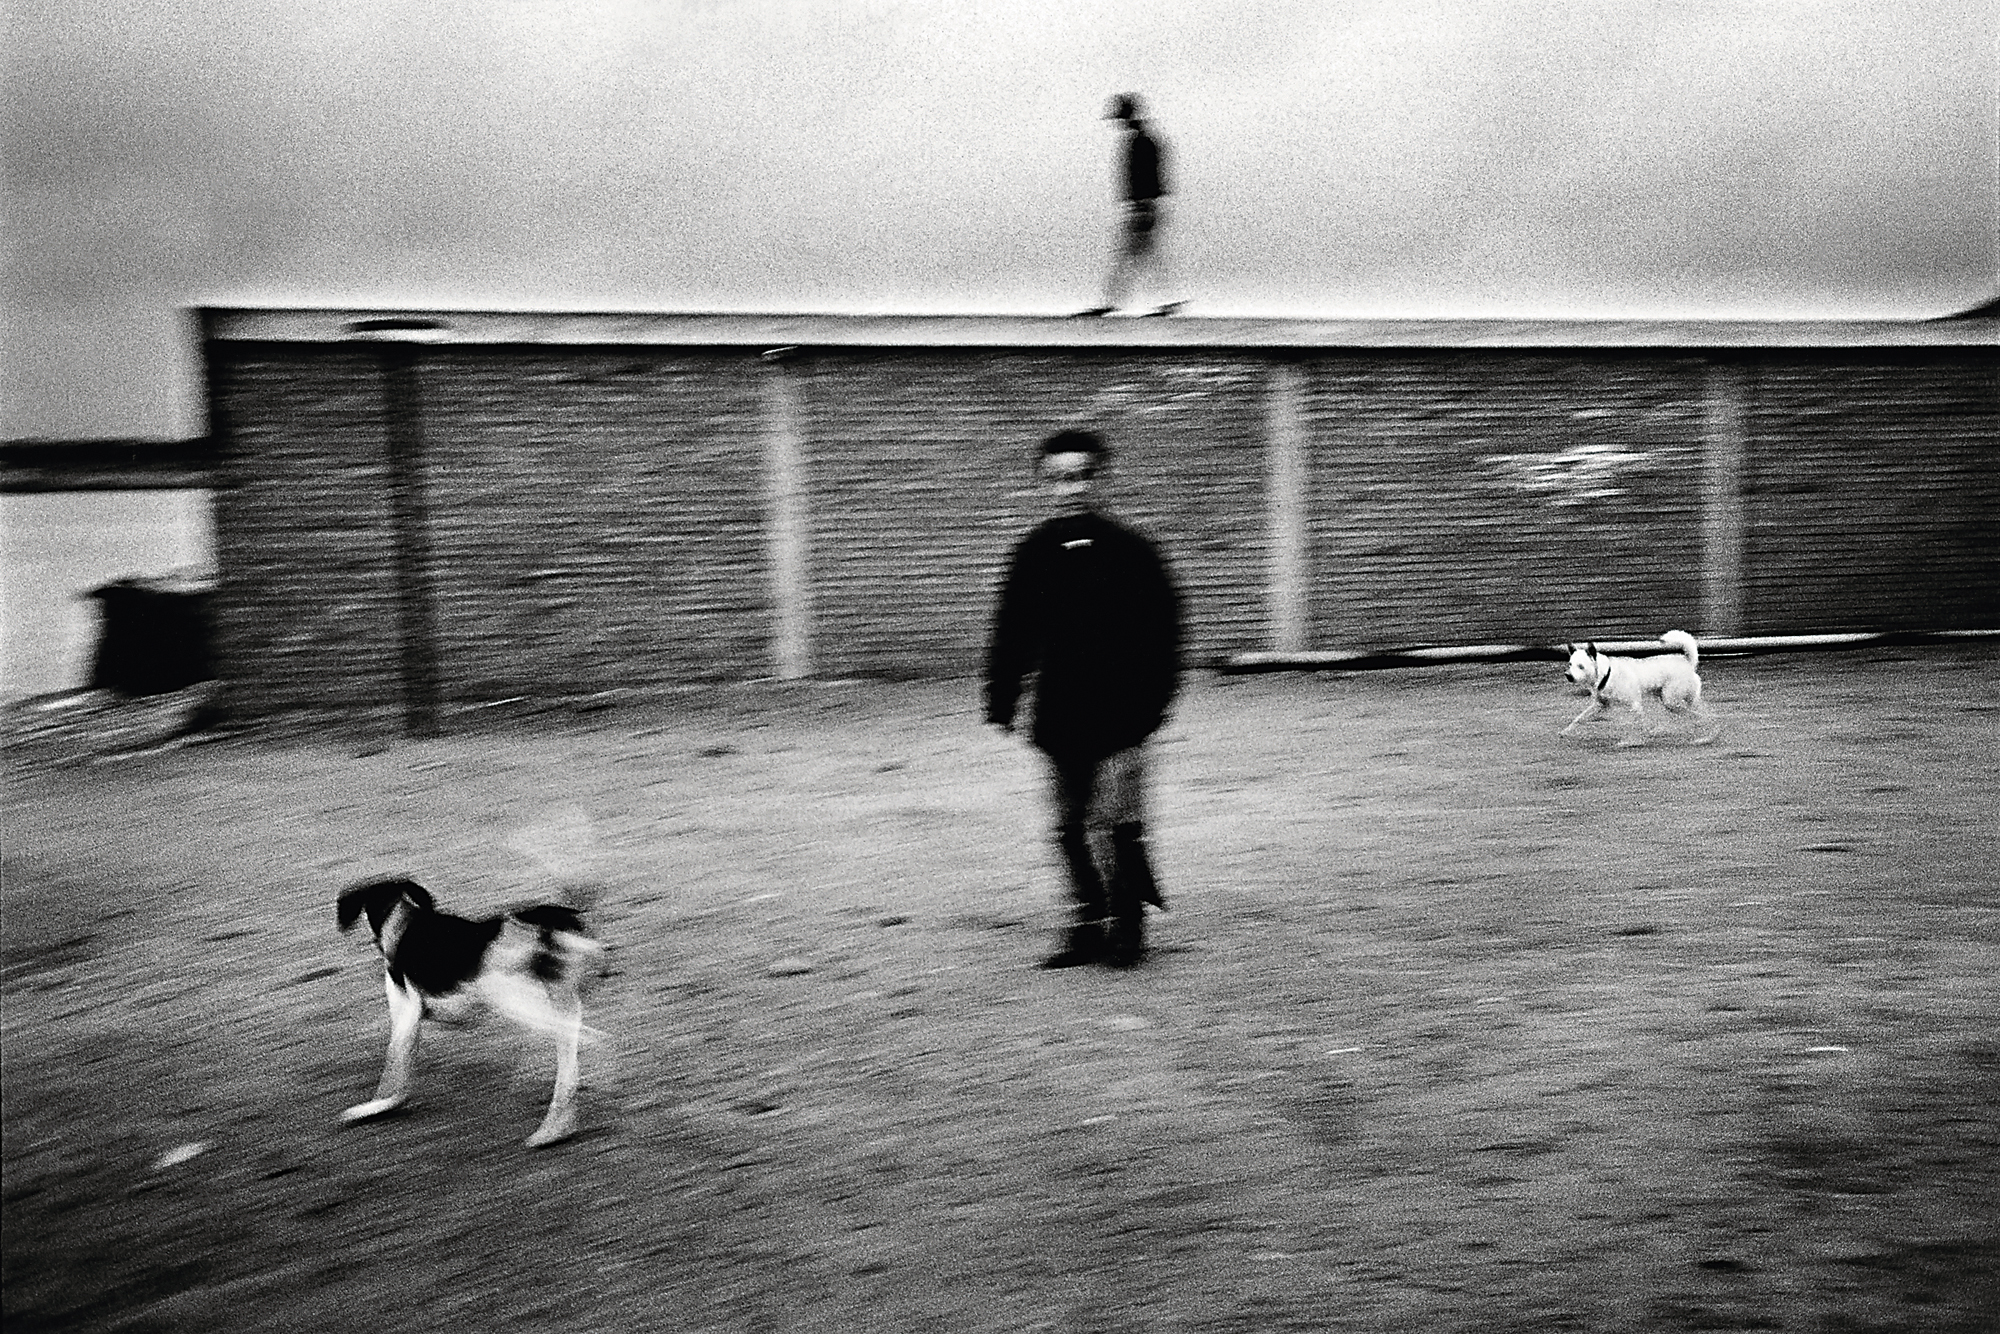 As the two men and the dogs departed, the camera captured them perfectly arranged relative to the wall, creating a great image. (courtesy of Chang Chao-tang)